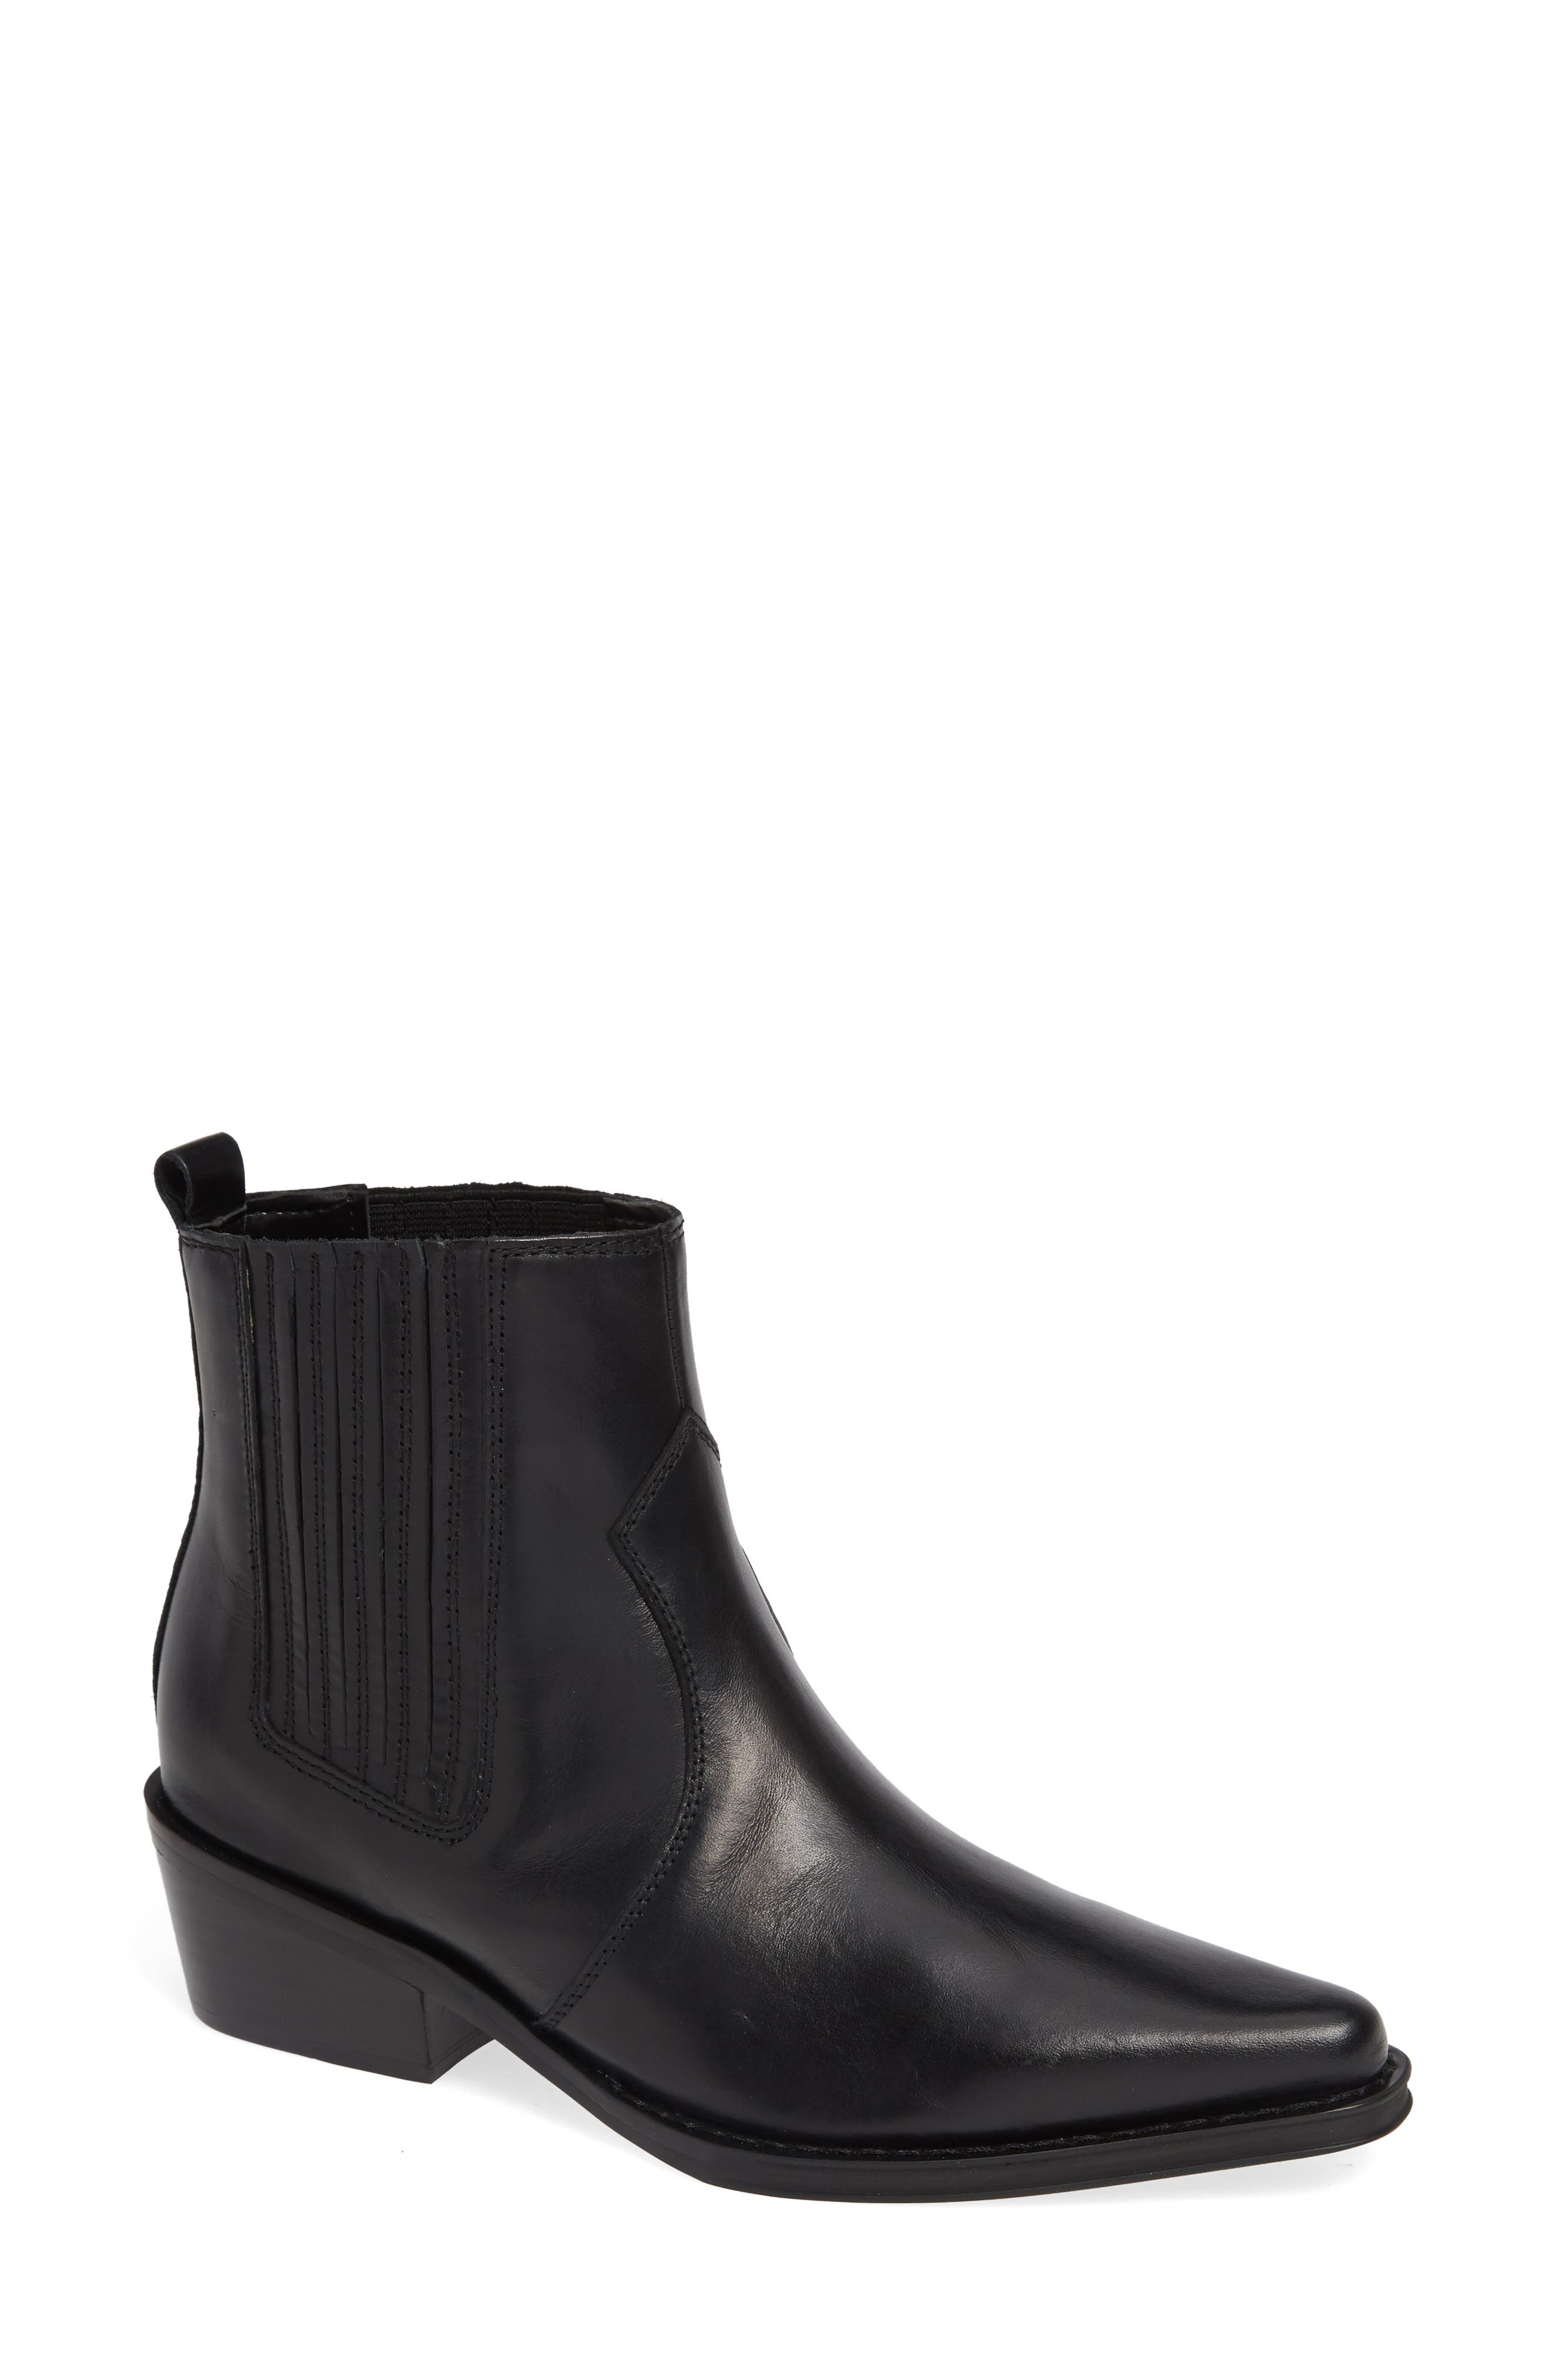 Barbara Bootie,                             Main thumbnail 1, color,                             BLACK LEATHER